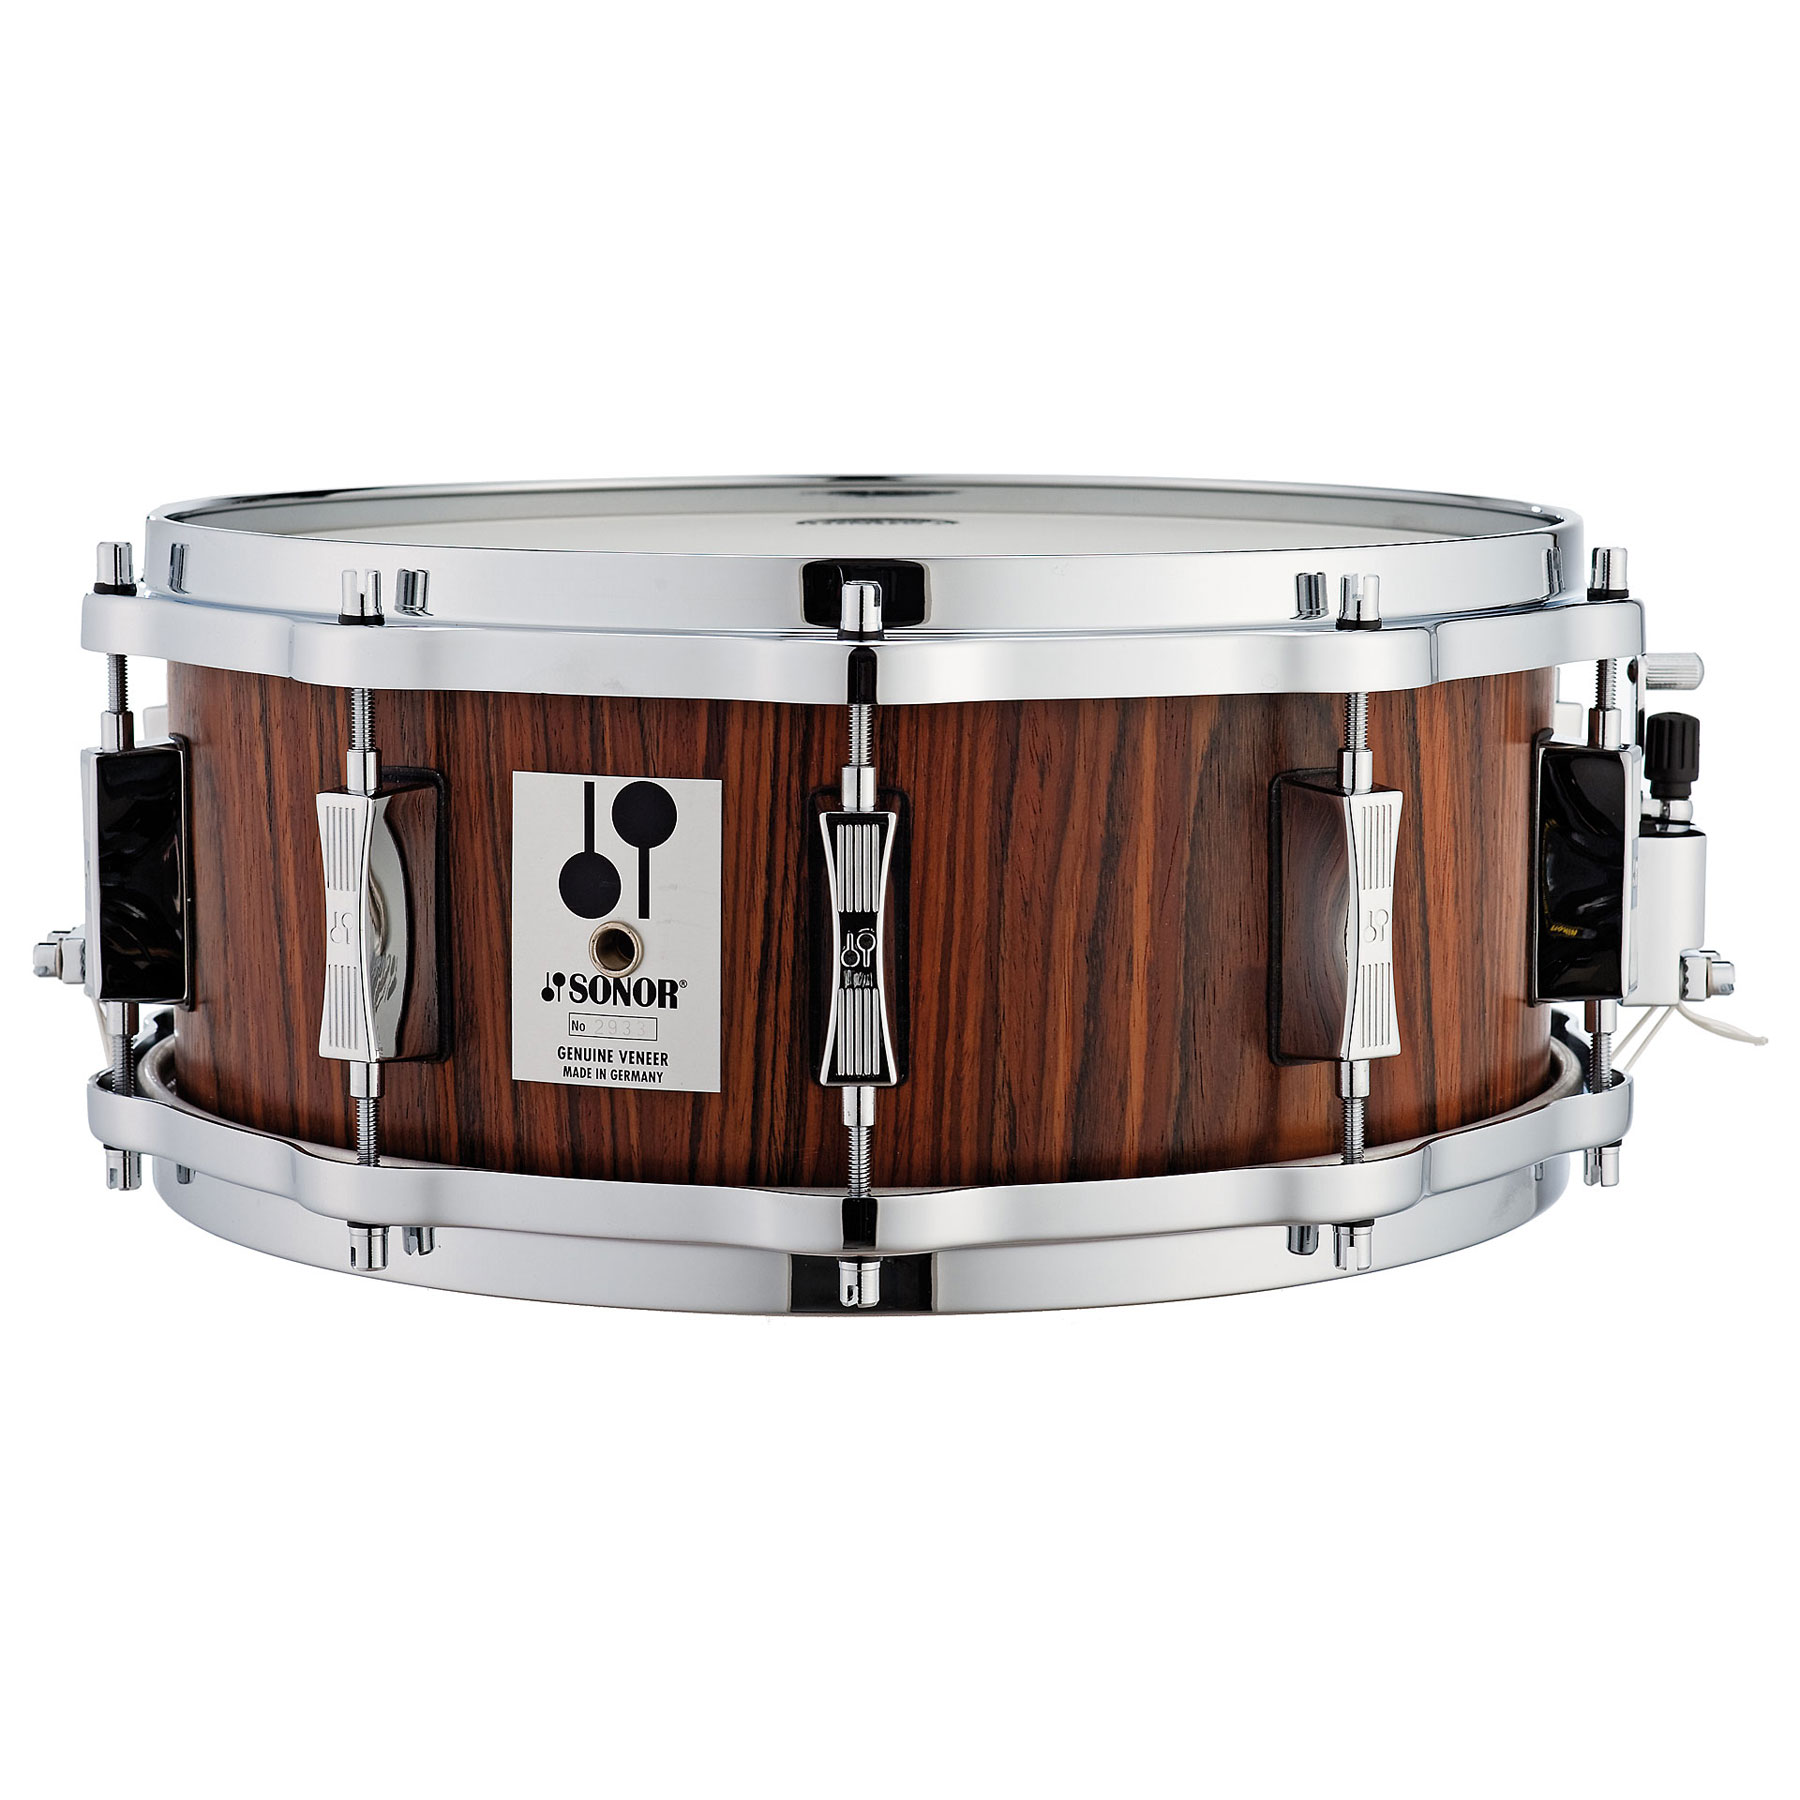 "Sonor 14"" x 5.75"" Phonic Re-Issue Beech Snare Drum with Rosewood Veneer"